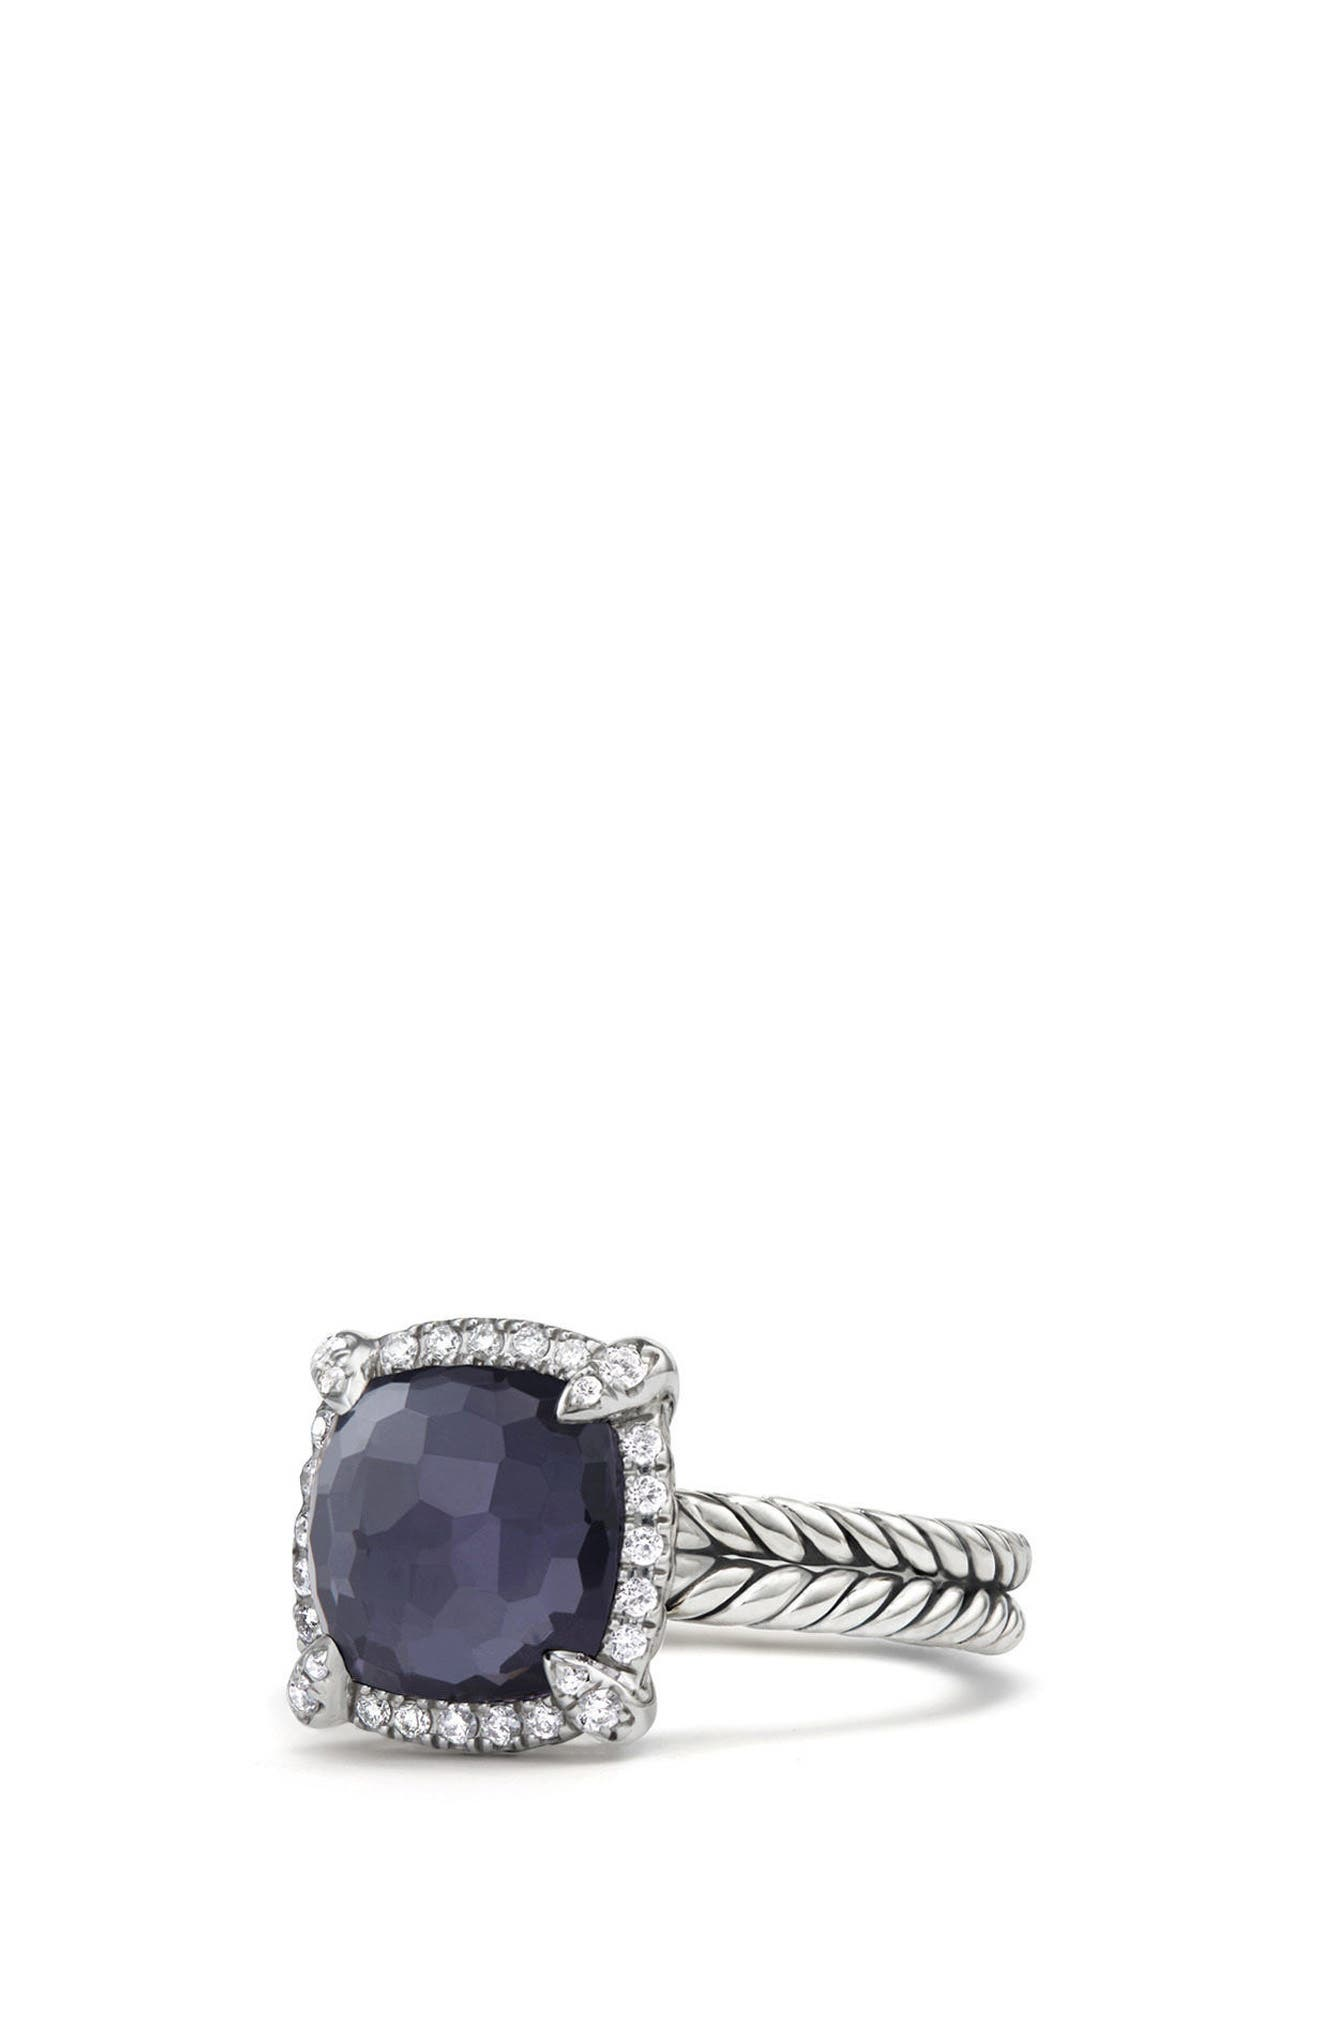 Châtelaine Pavé Bezel Ring with Black Orchid & Diamonds, 9mm,                             Main thumbnail 1, color,                             AMETHYST/ HEMETINE